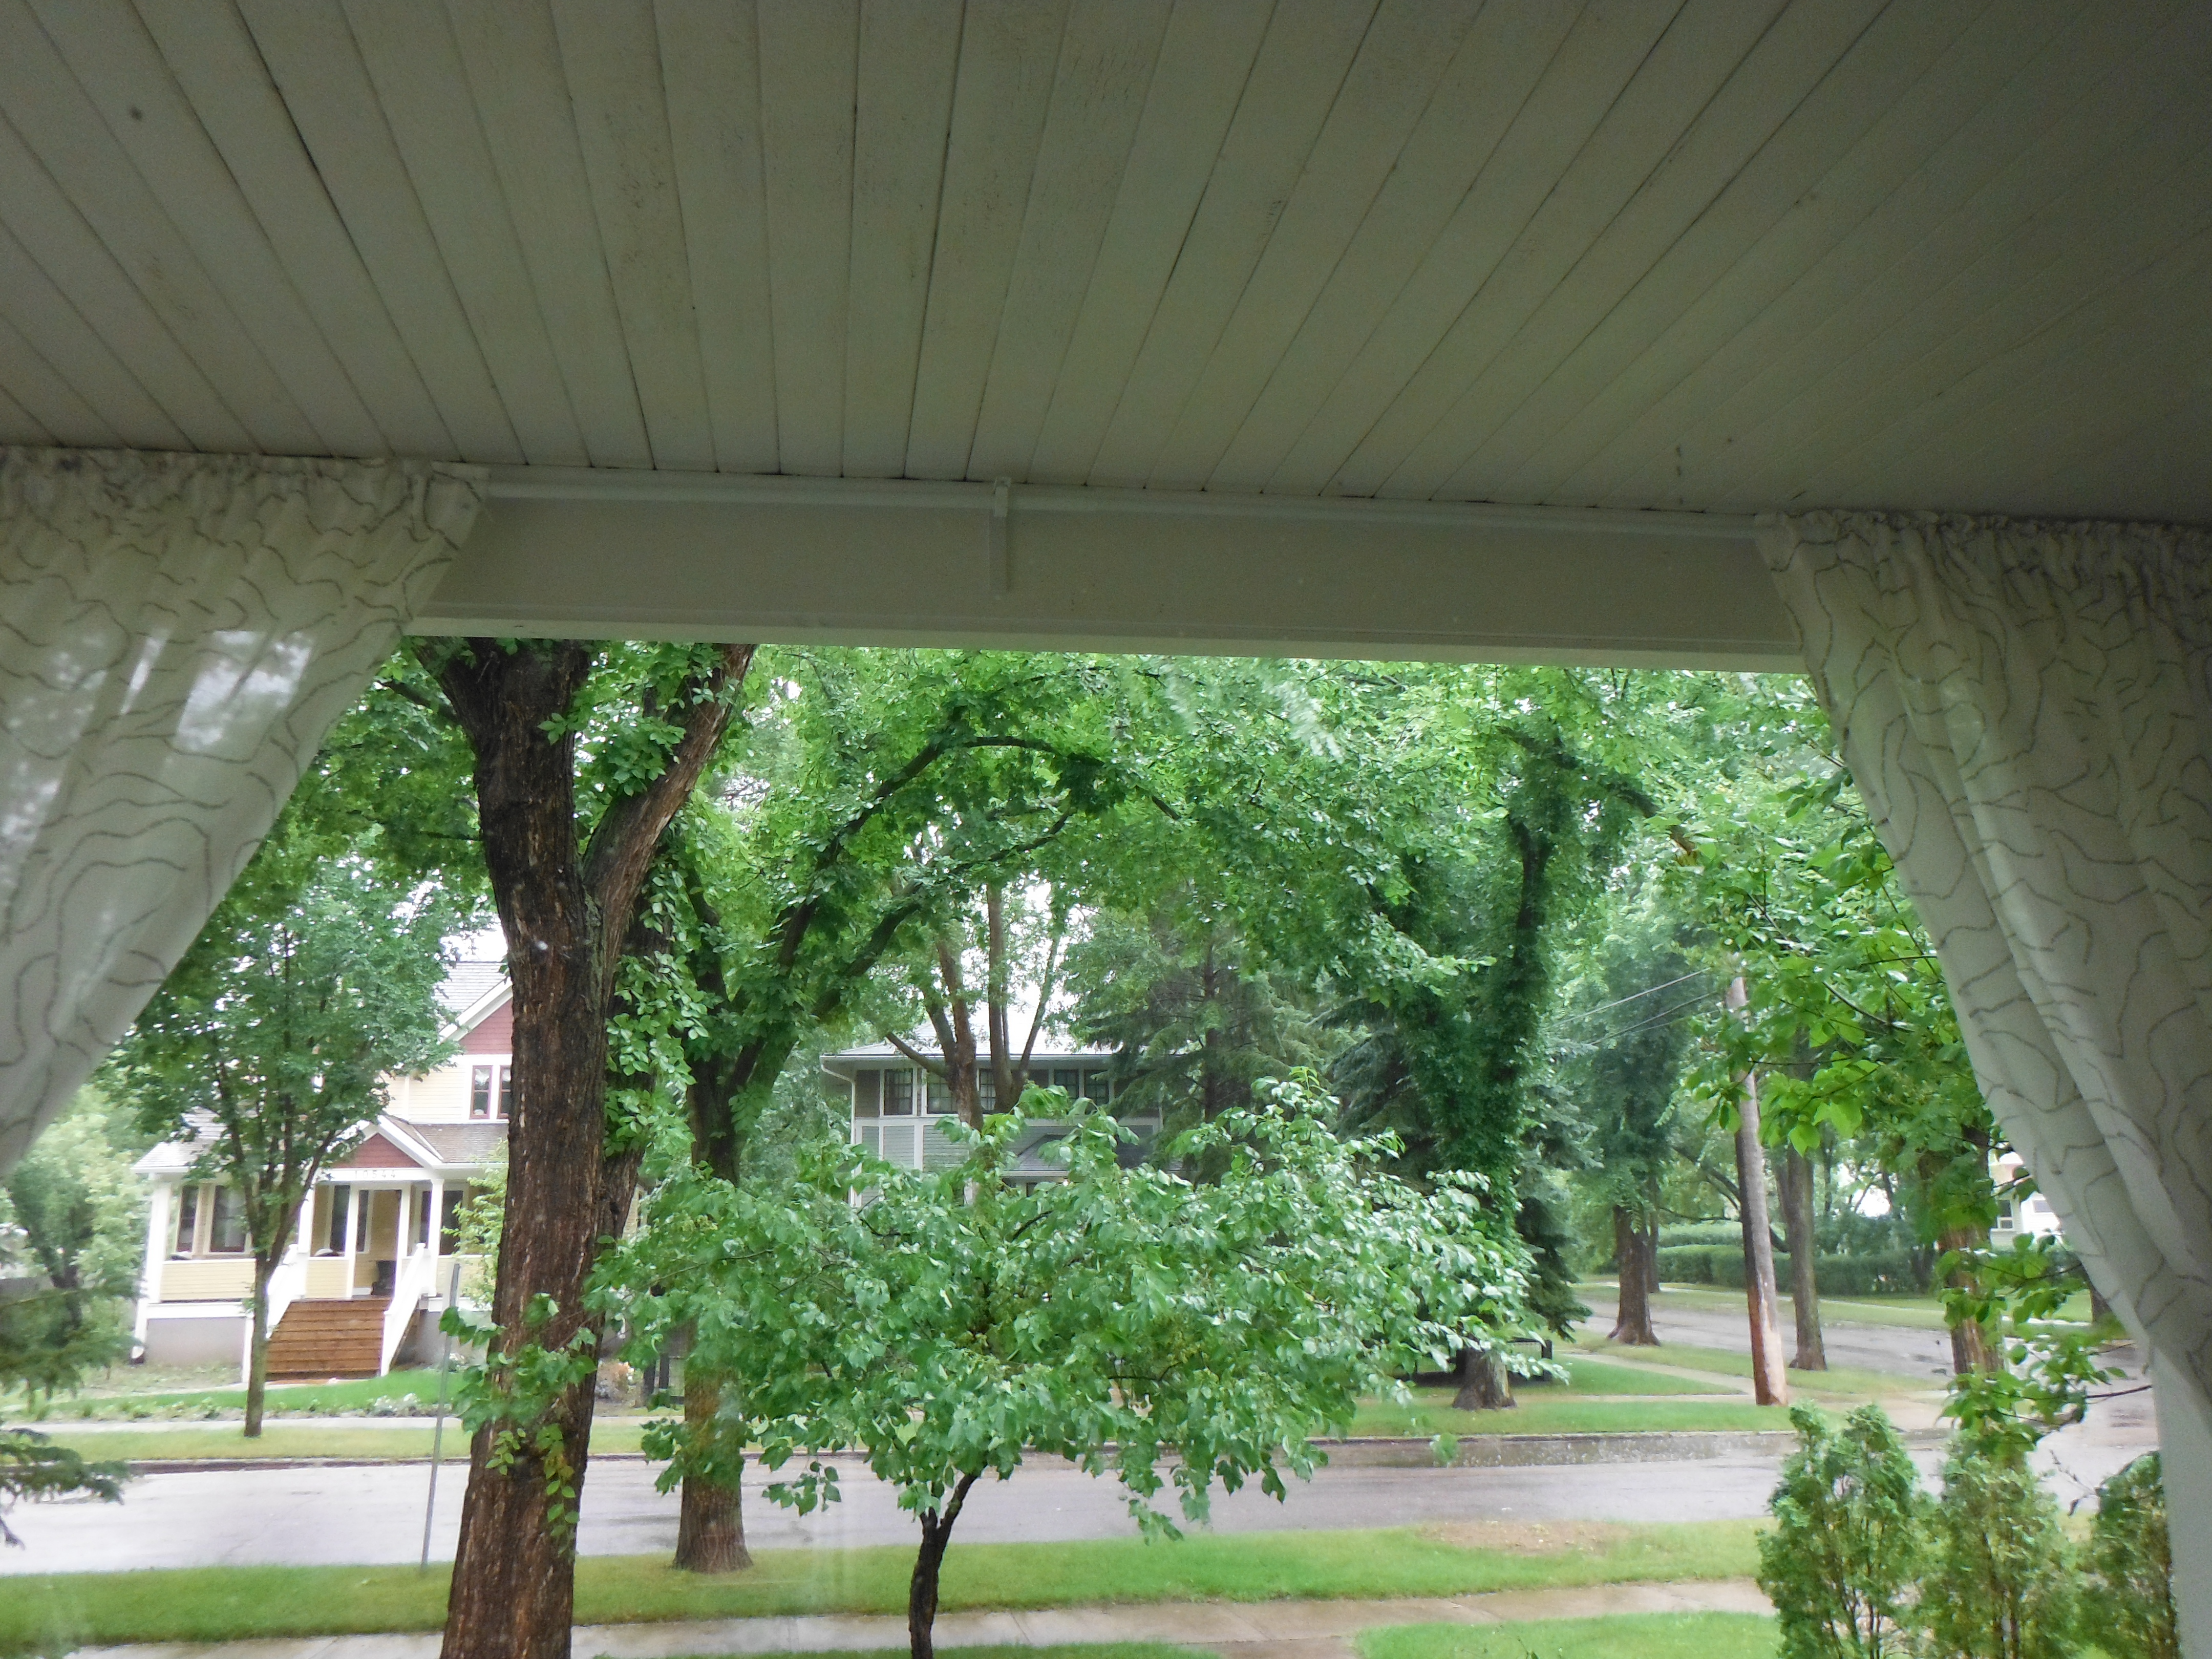 The view from the porch